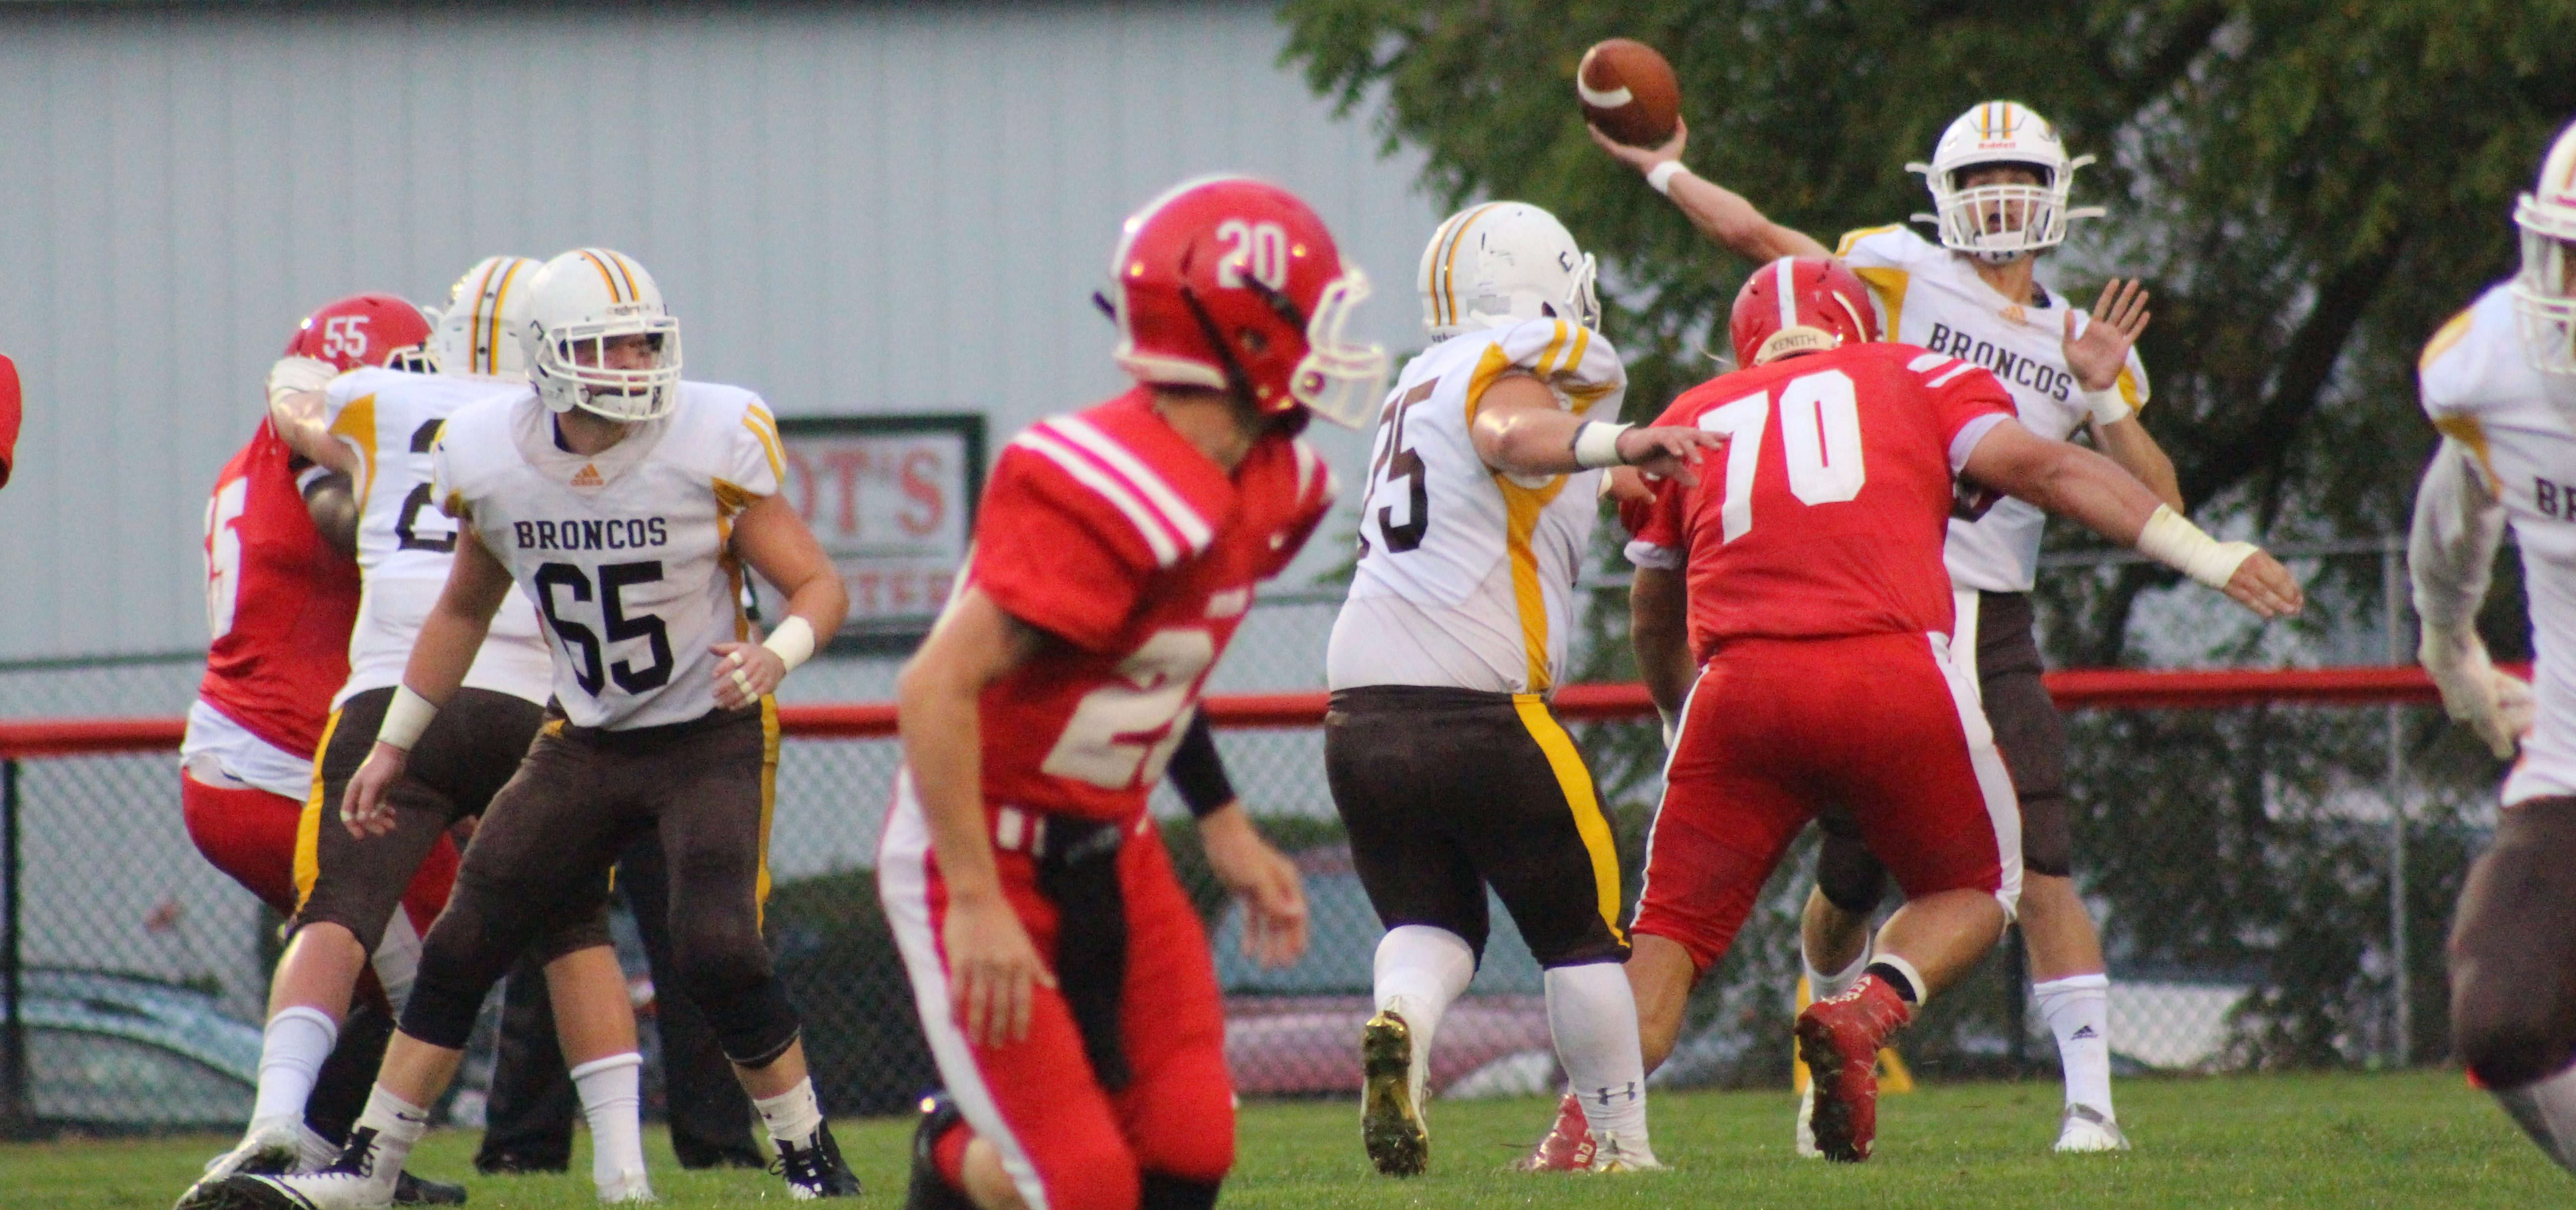 Western Brown quarterback launches a pass